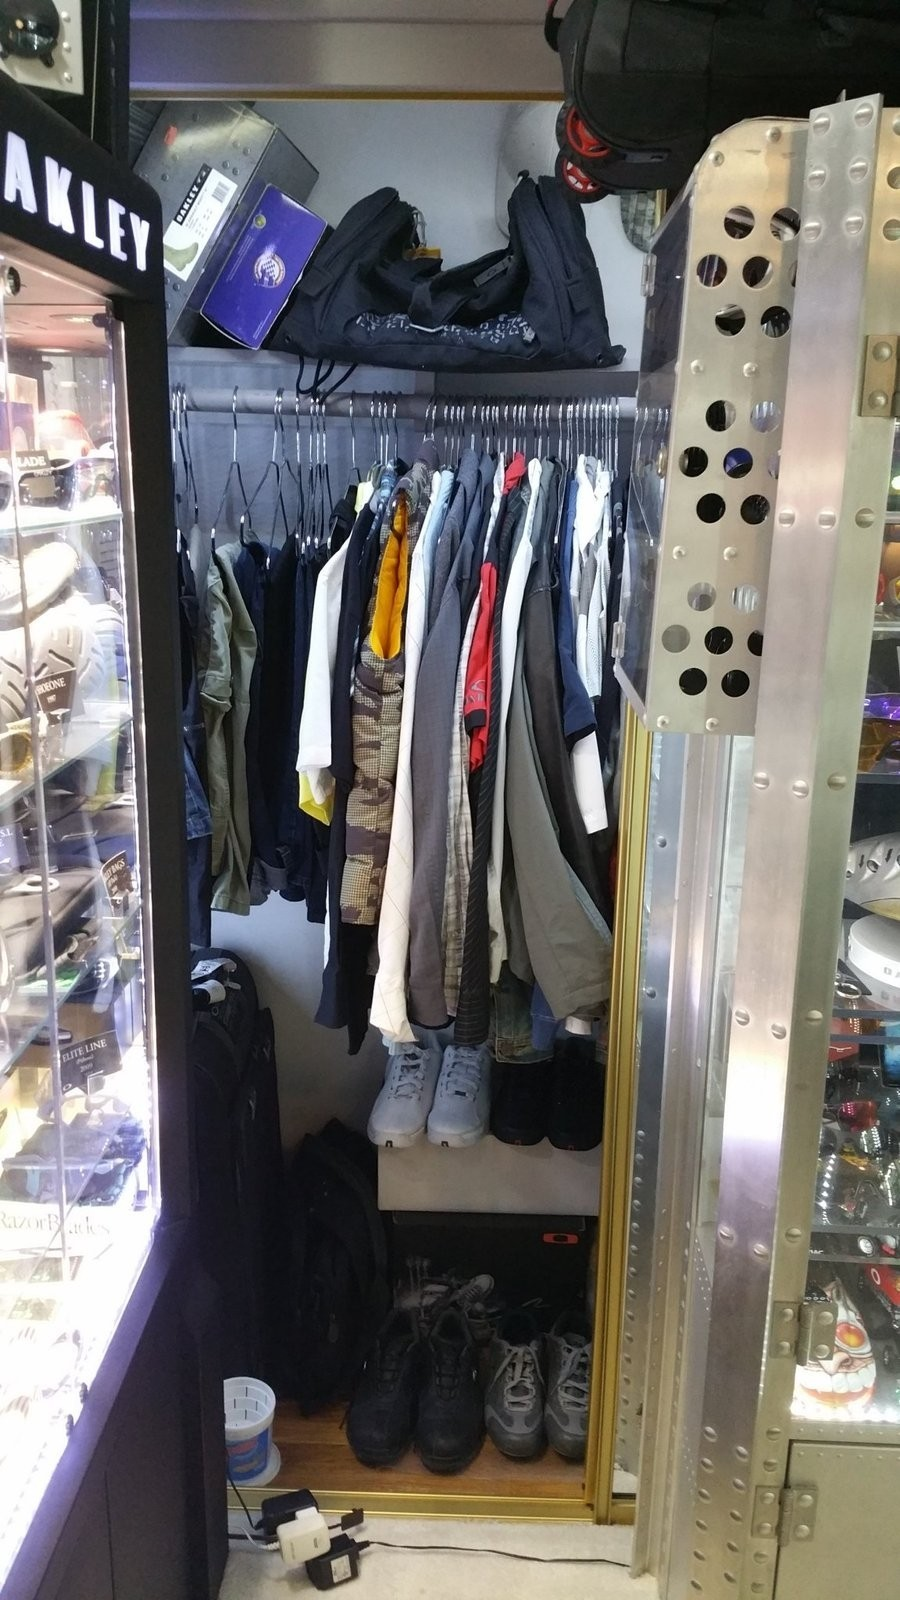 Oakley rooms - show us yours - closet3.jpg